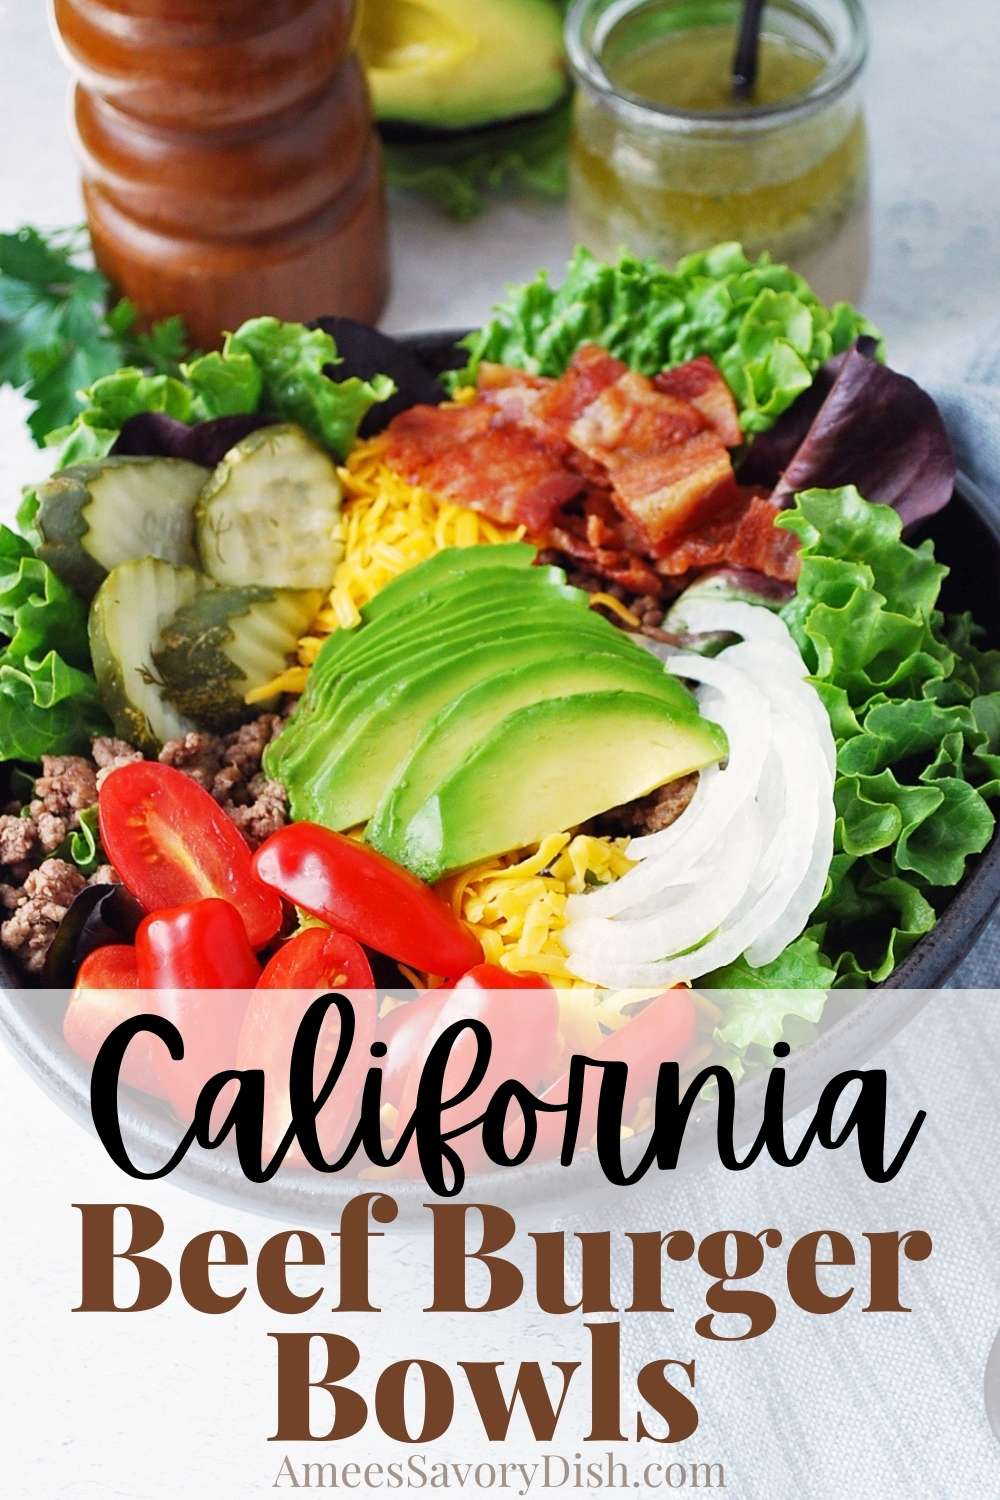 #Sponsored This easy recipe for California Beef Burger Bowls is packed with all the tasty goodness of a California burger in a hearty salad topped with a flavorful ranch vinaigrette dressing. This delicious Beef recipe is on the table in 20 minutes or less! @beeffordinner #NicelyDone #BeefFarmersandRanchers #NationalBeefBurgerDay #BeefBurger via @Ameessavorydish